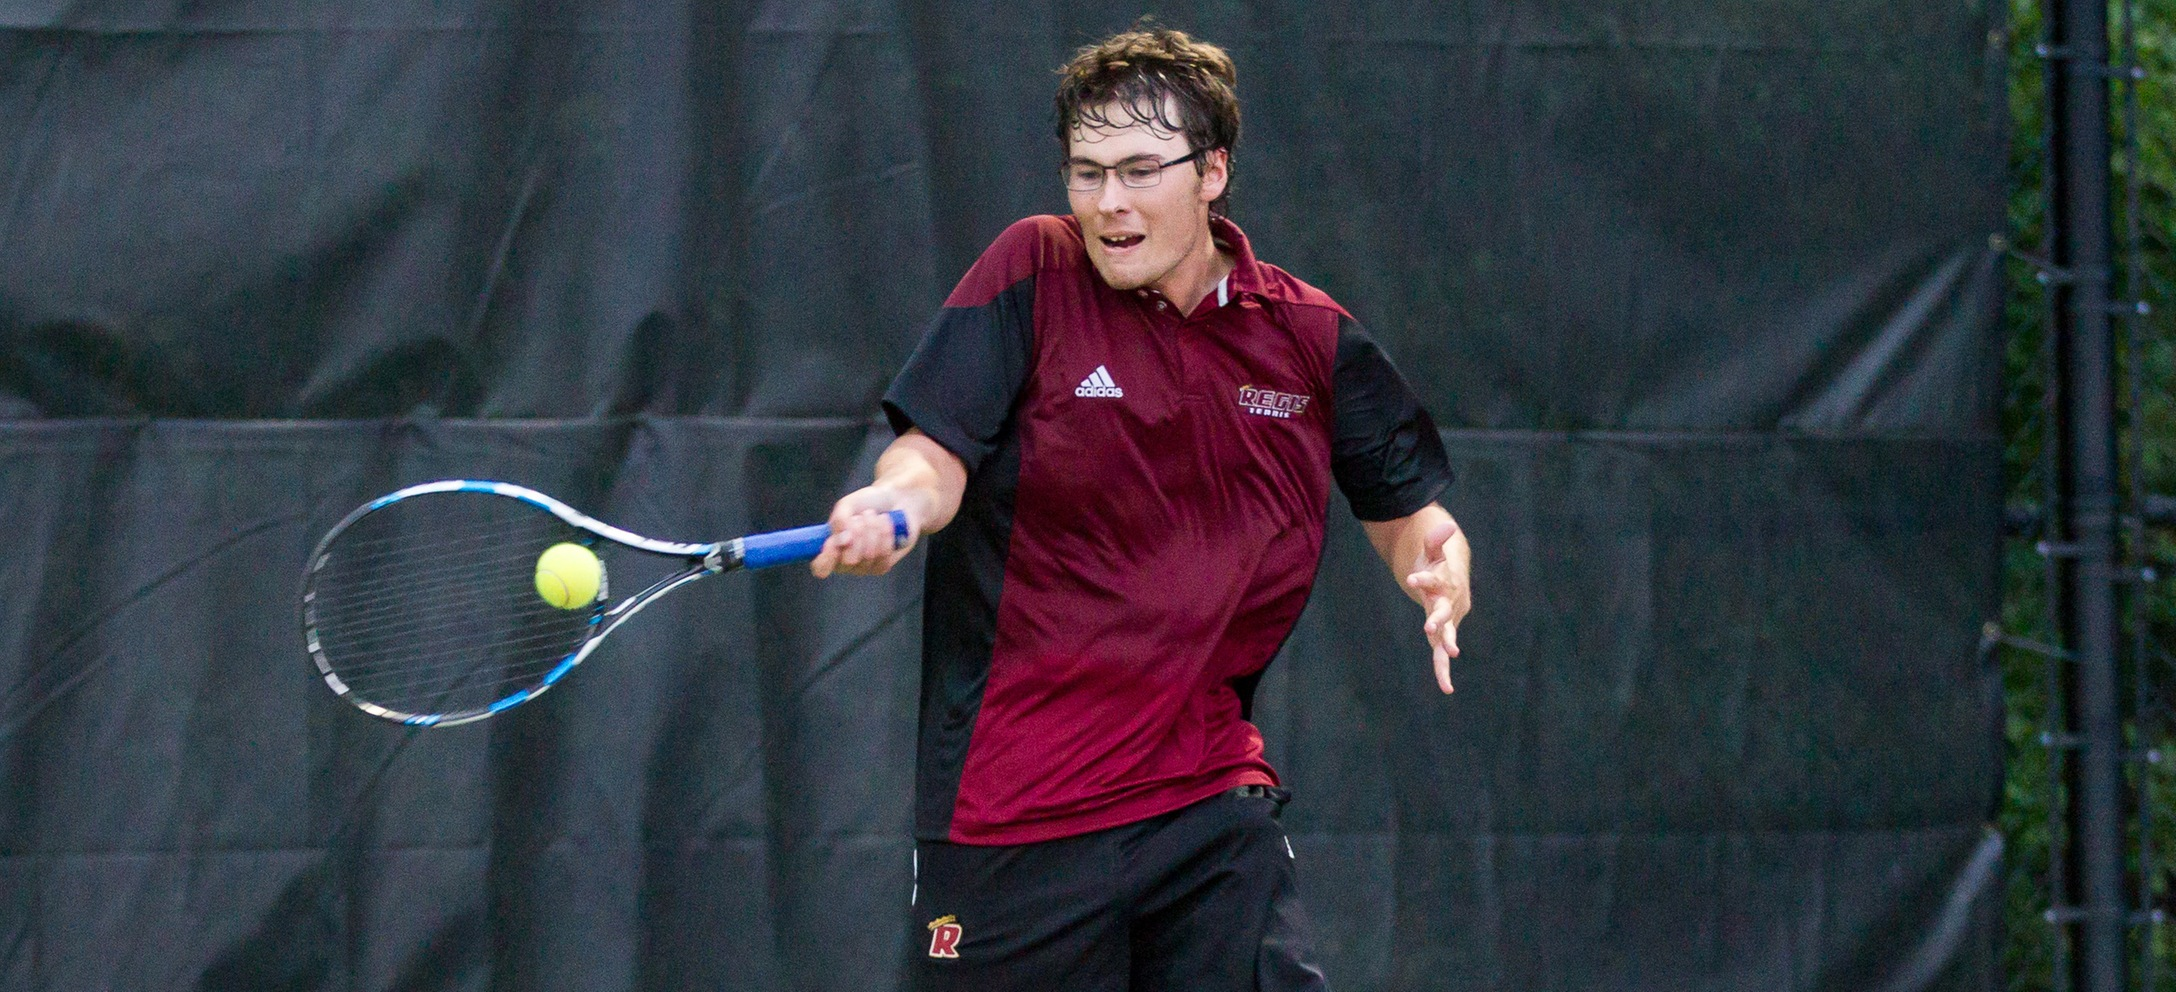 Men's Tennis Downs Emerson for First Win